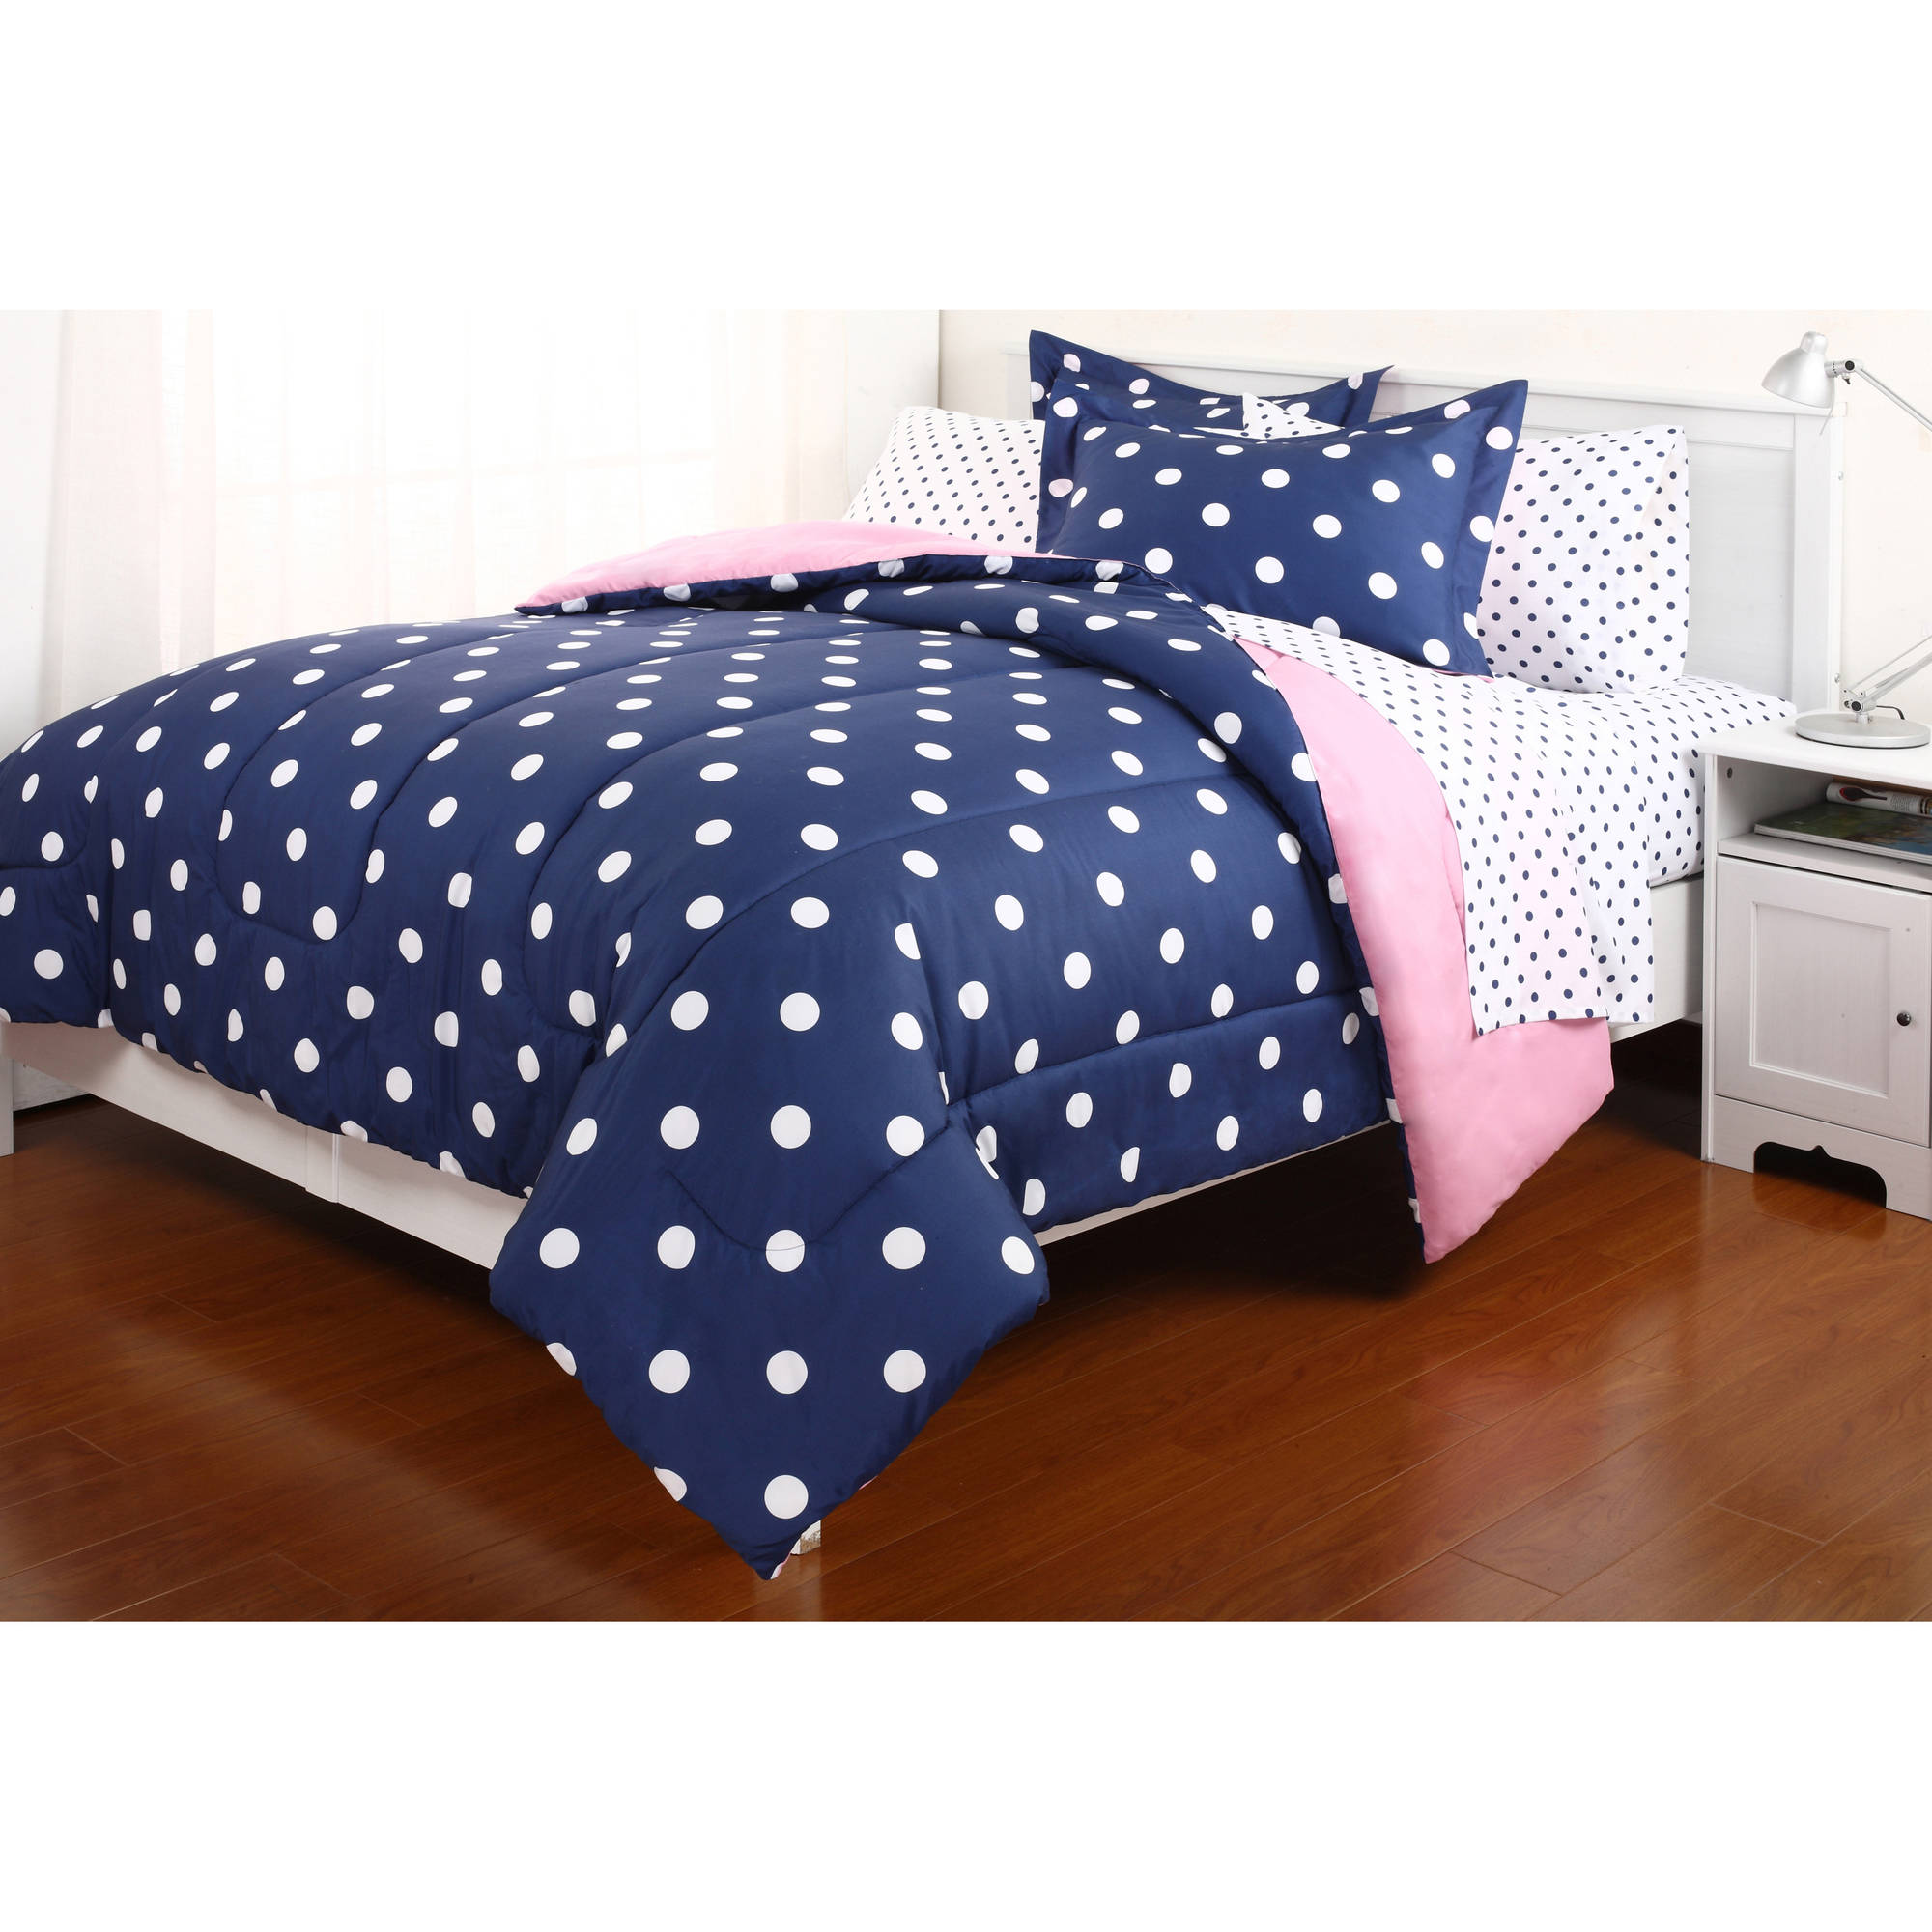 Purple Bedspreads | Twin Comforter Set | Navy Blue Comforter